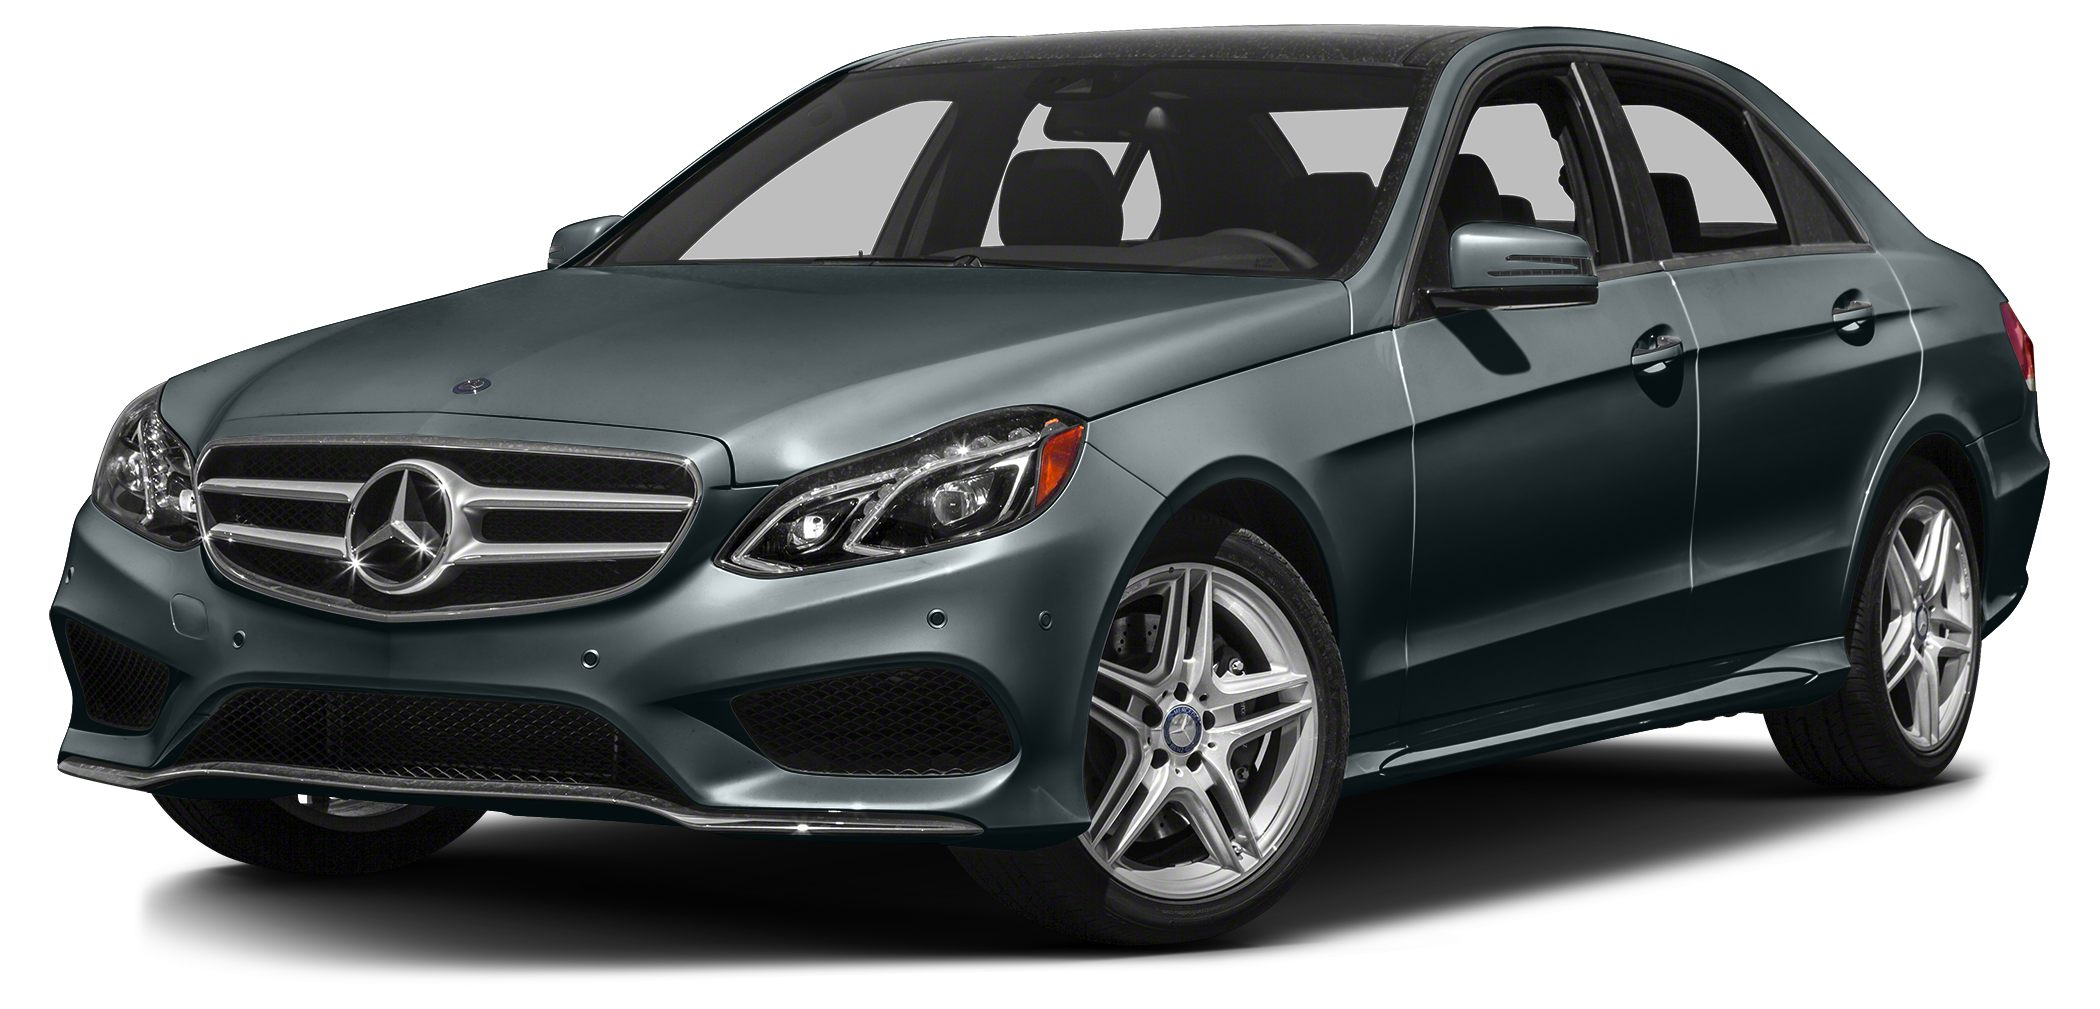 2014 MERCEDES E-Class E350 Just off lease this 2014 E350 has only 27k miles Very well optioned c